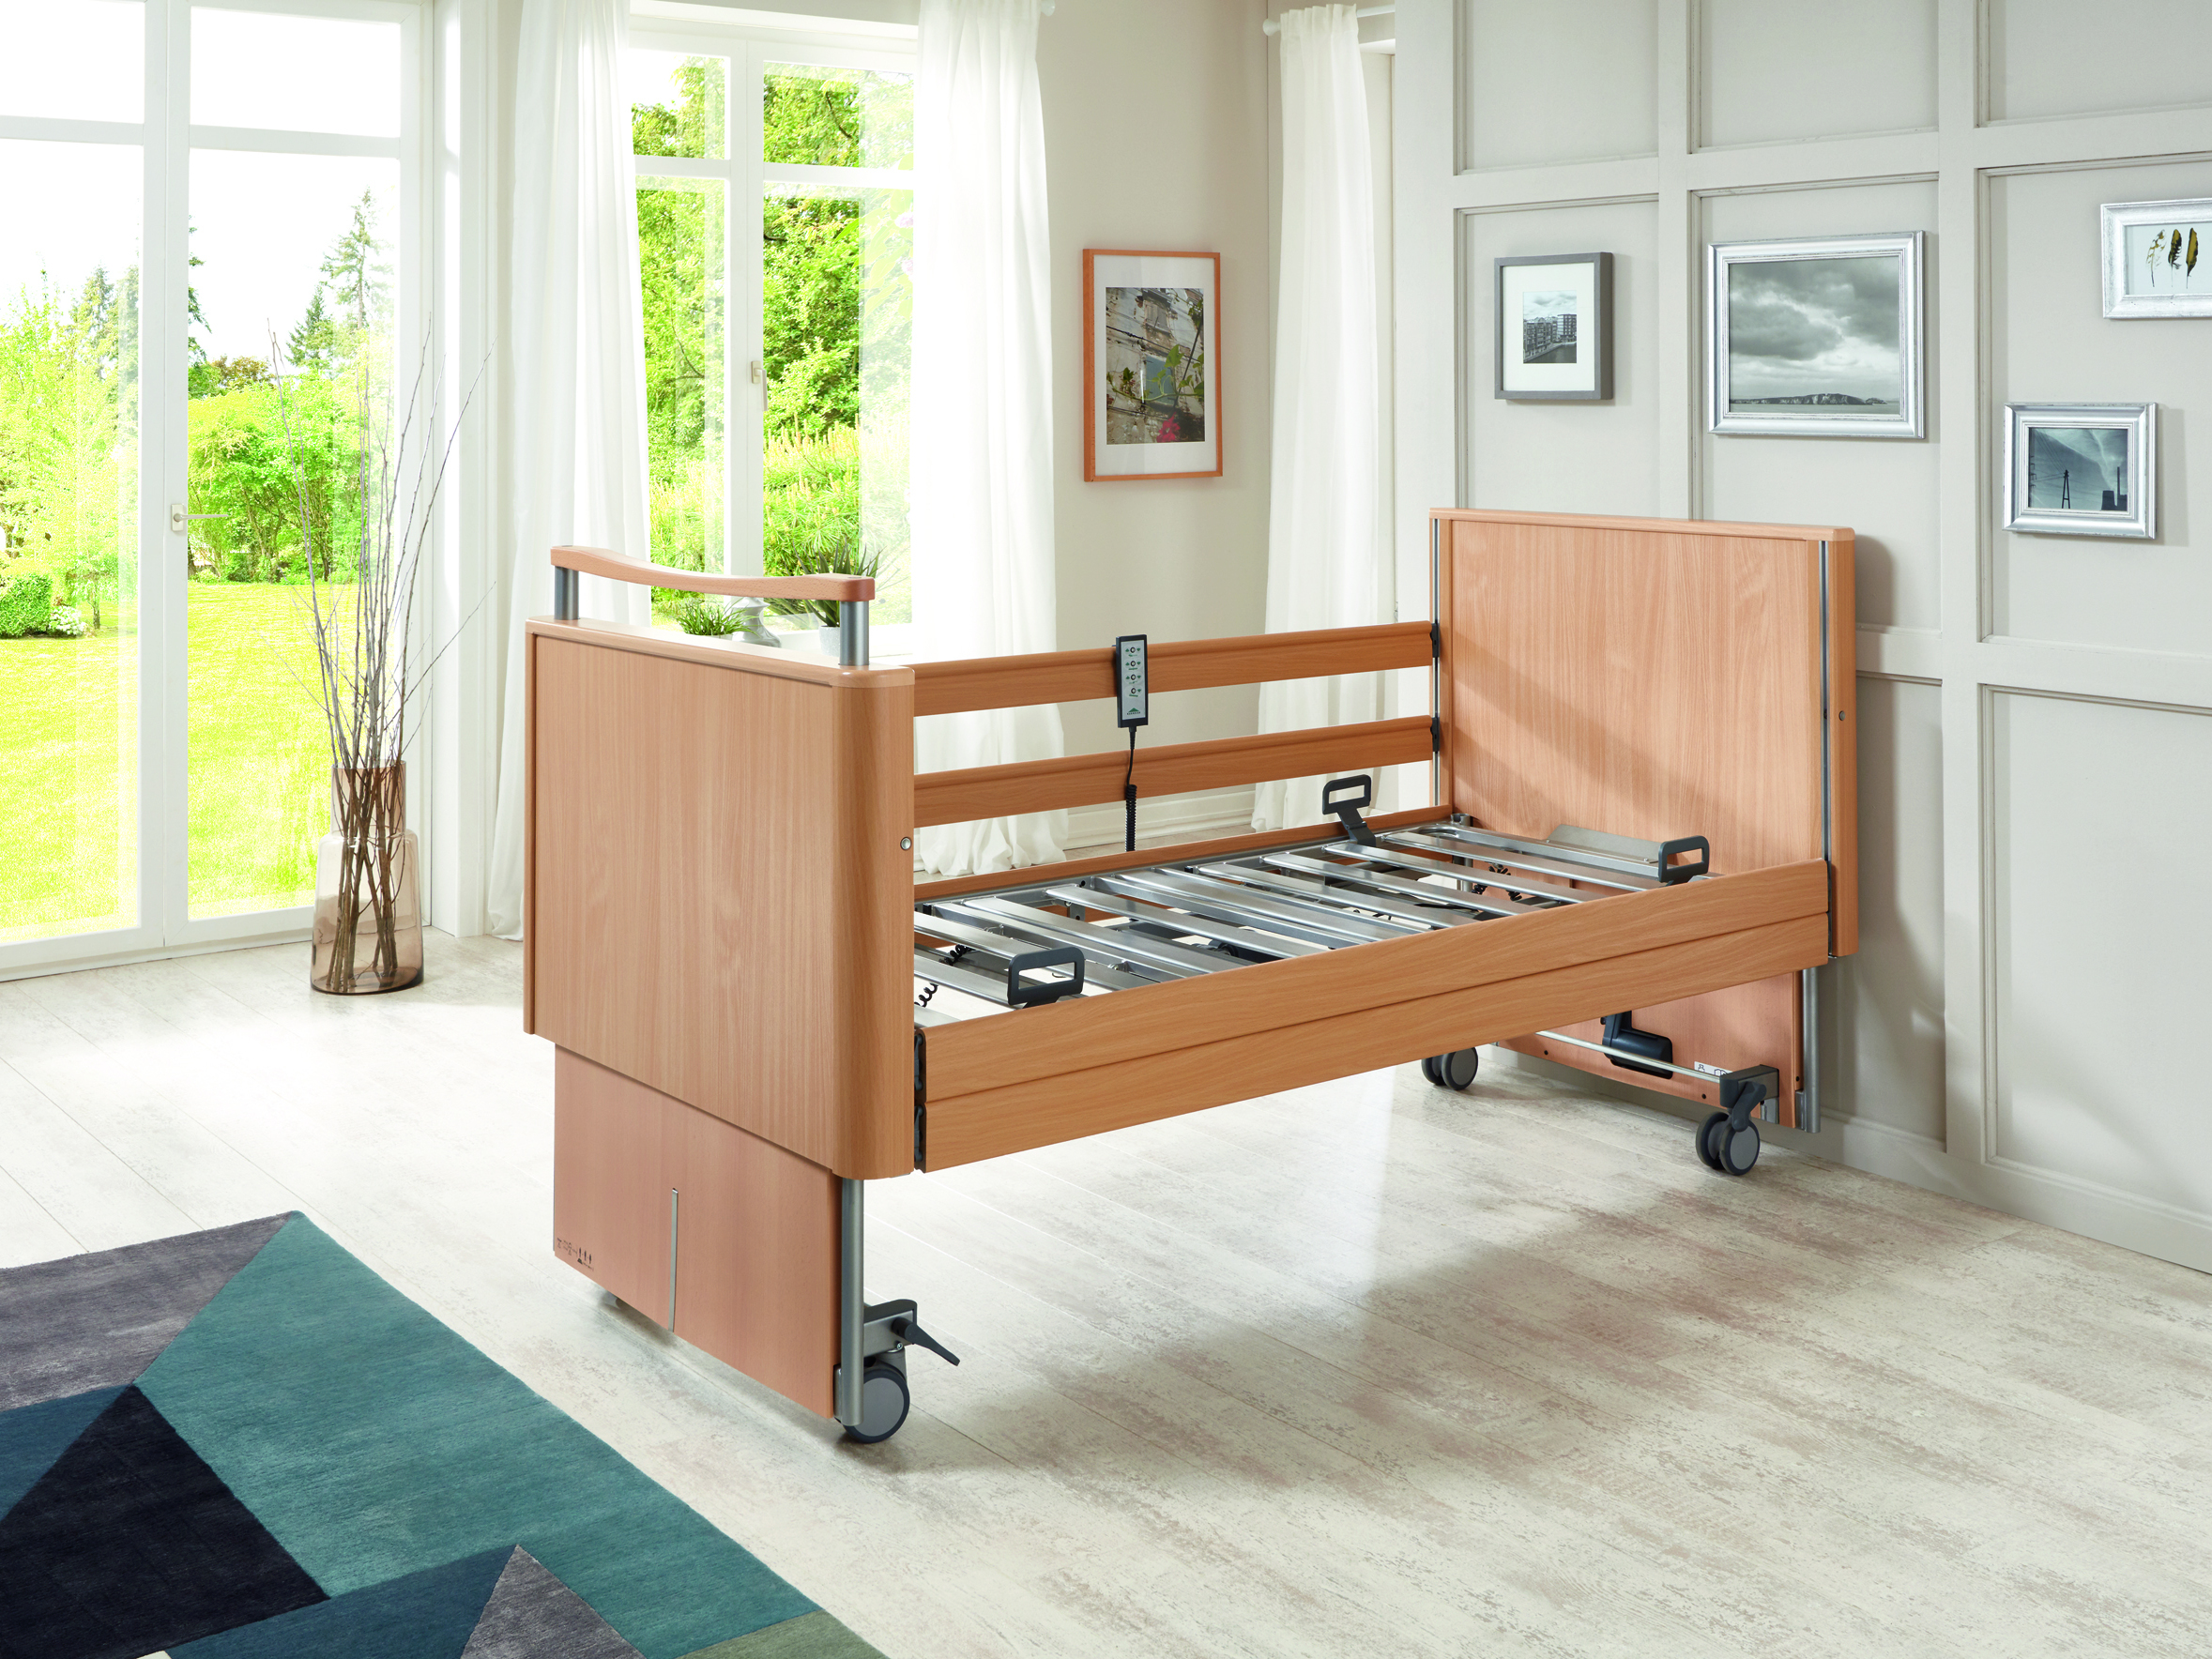 Large height adjustment range of the Inovia low-height bed